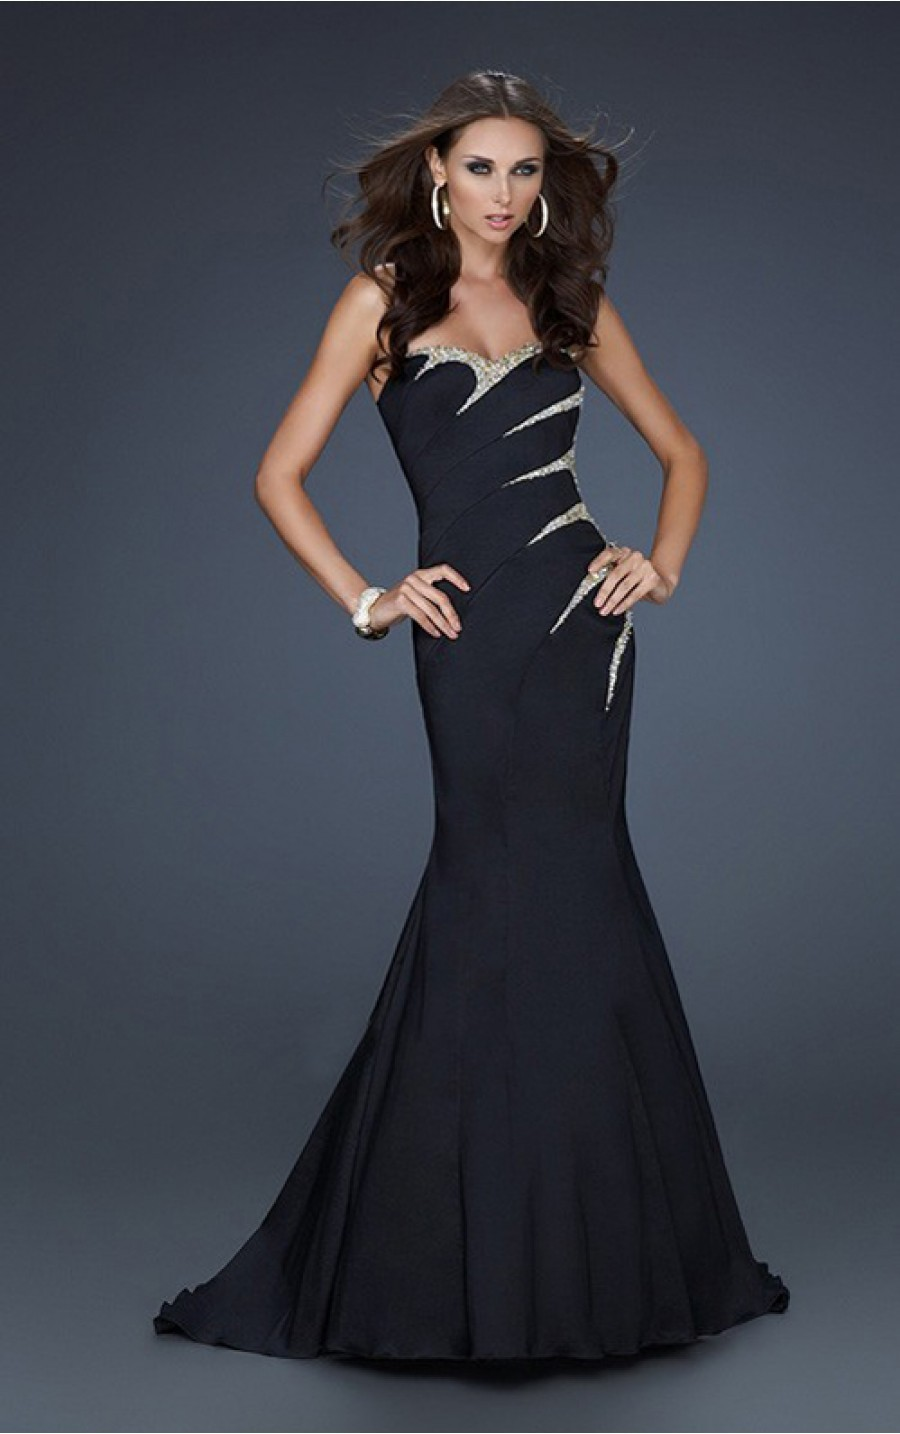 Outstanding Prom Dresses In Frisco Tx Component - Wedding Dress ...